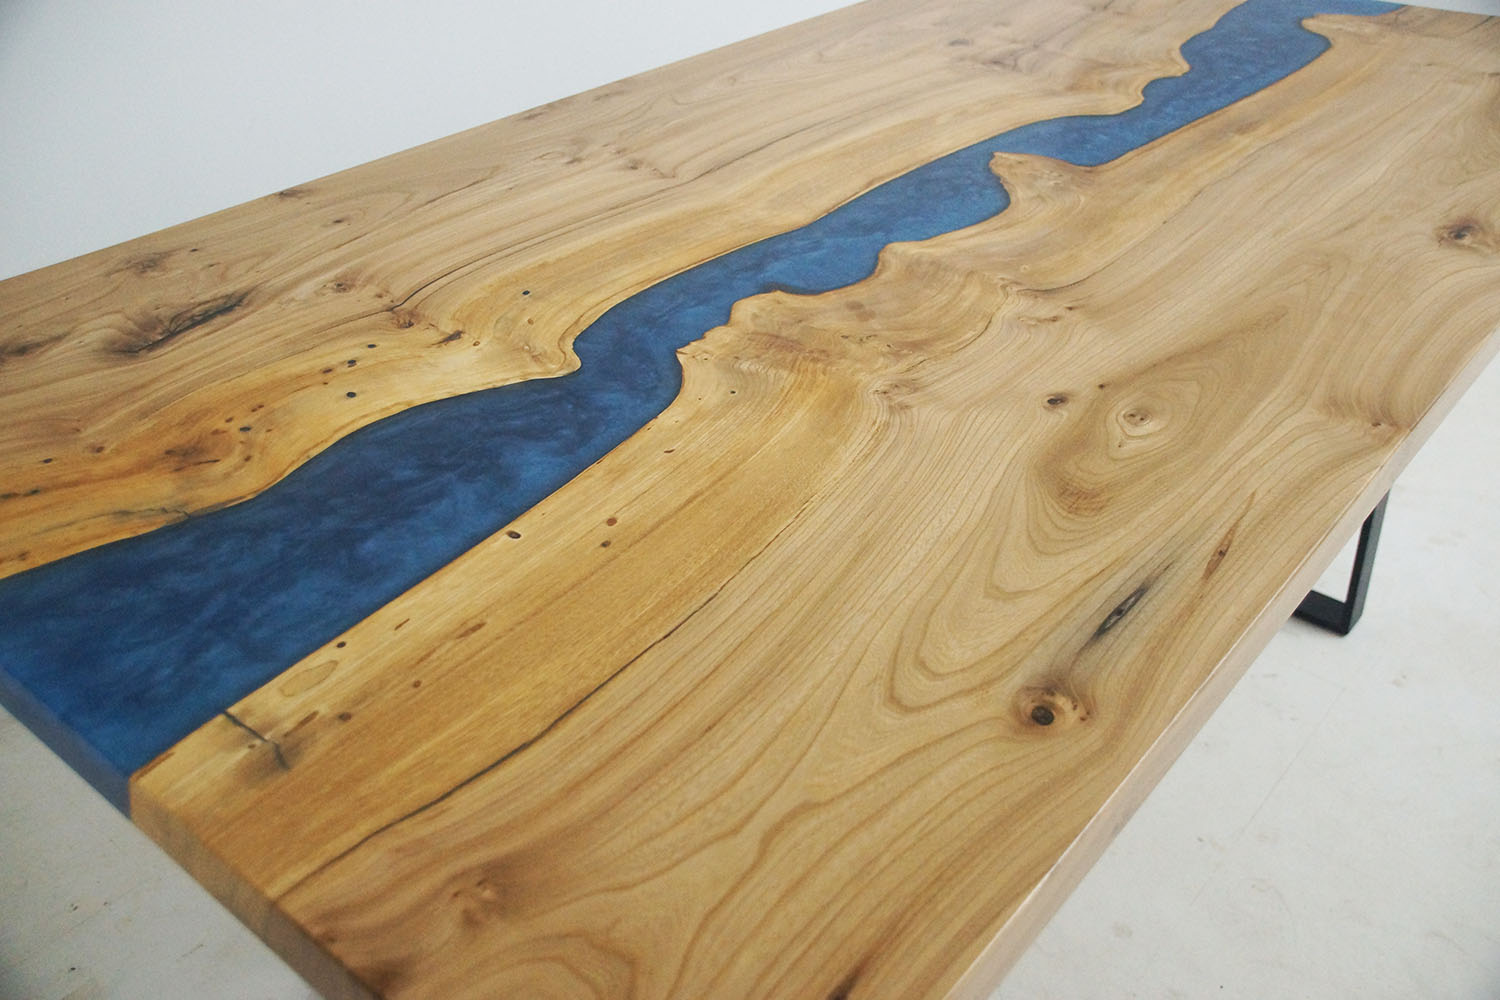 Elm Kitchen Table With Blue Resin River